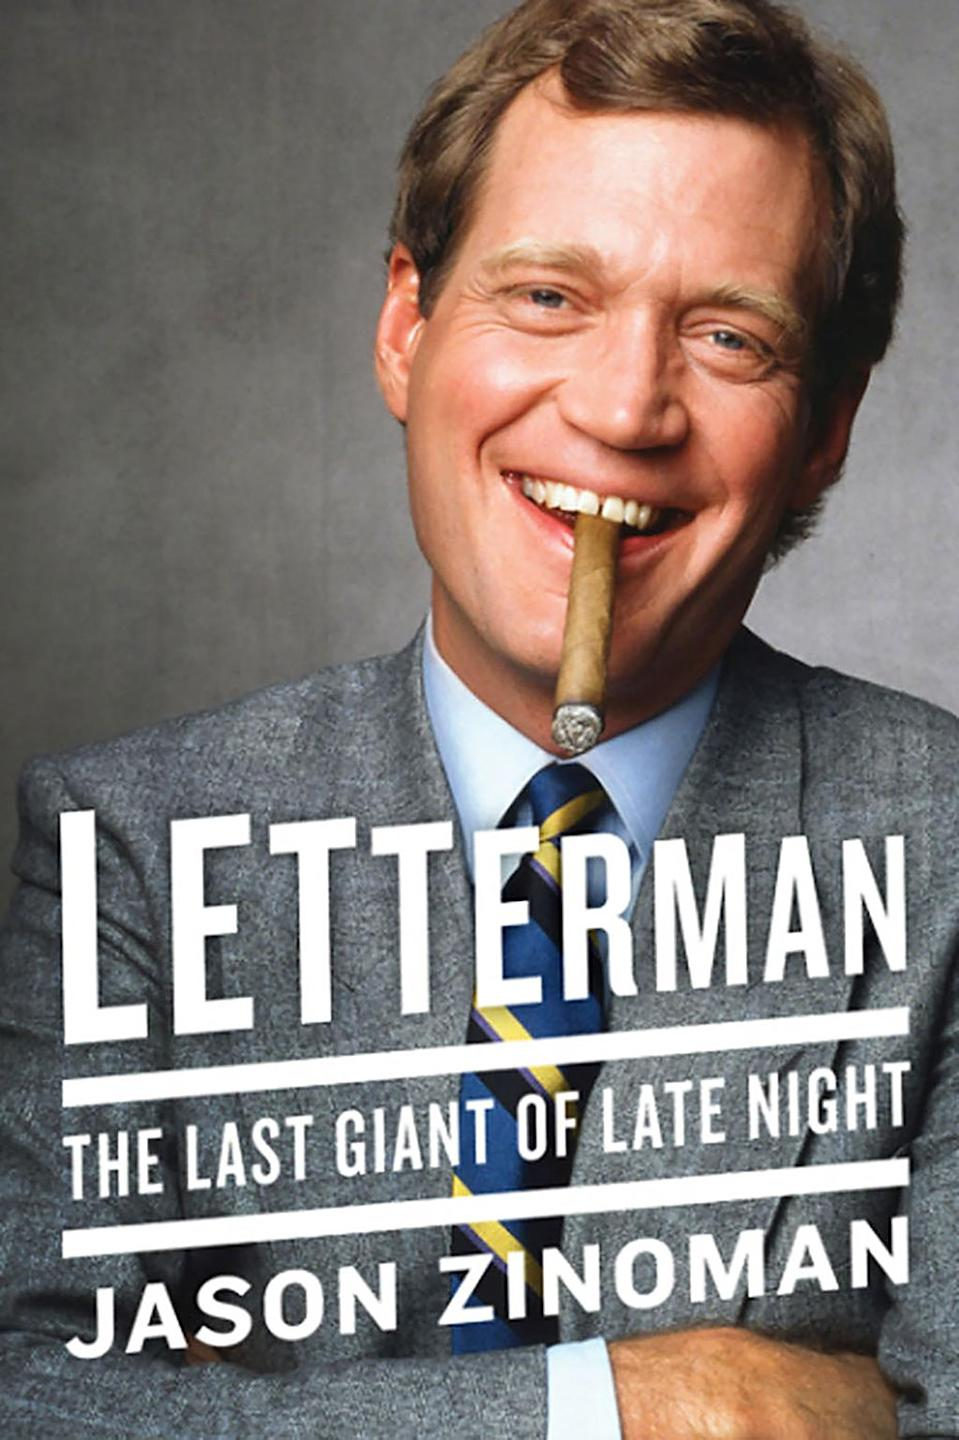 "<p>Even if you understand that Letterman remains an influential pop culture presence even in retirement, <em>New York Times</em> comedy critic Zinoman's personal and career biography of the icon will shed light on just how widespread his impact is throughout all mediums of the comedy and TV world. Covering his early TV days in Indiana through his complicated relationships with, well, pretty much everyone, including his shows' writers and <em>Late Night With David Letterman</em> co-creator and one-time Letterman love Merill Markoe and his move to CBS, Zinoman's book is an all-access pass to Letterman's TV history, relationships, and groundbreaking work, including 135 Stupid Pet Tricks segments, the classic Velcro suit, and the plan to do an entire episode of the show underwater, long before <a rel=""nofollow"" href=""https://www.yahoo.com/tv/tagged/bojack-horseman"" data-ylk=""slk:BoJack Horseman"" class=""link rapid-noclick-resp""><em>BoJack Horseman</em></a> did it in animation.<br><br>(Harper) </p>"